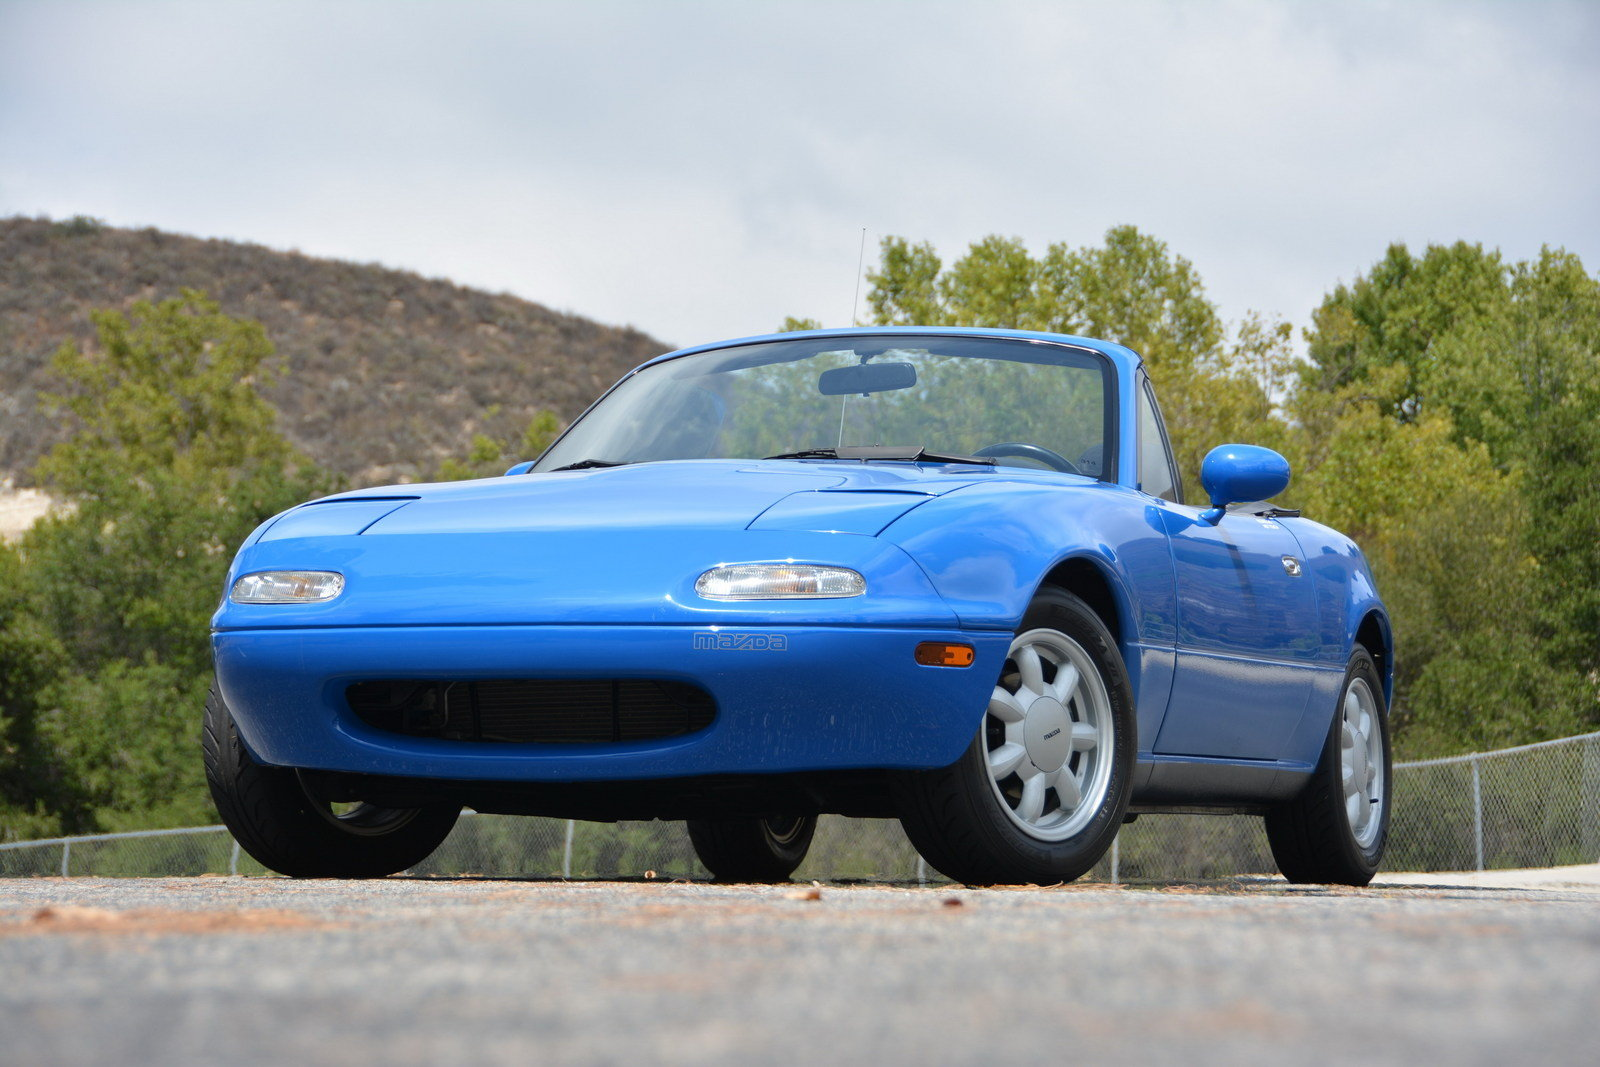 1990 mazda mx 5 miata driven picture 638399 car review top speed. Black Bedroom Furniture Sets. Home Design Ideas